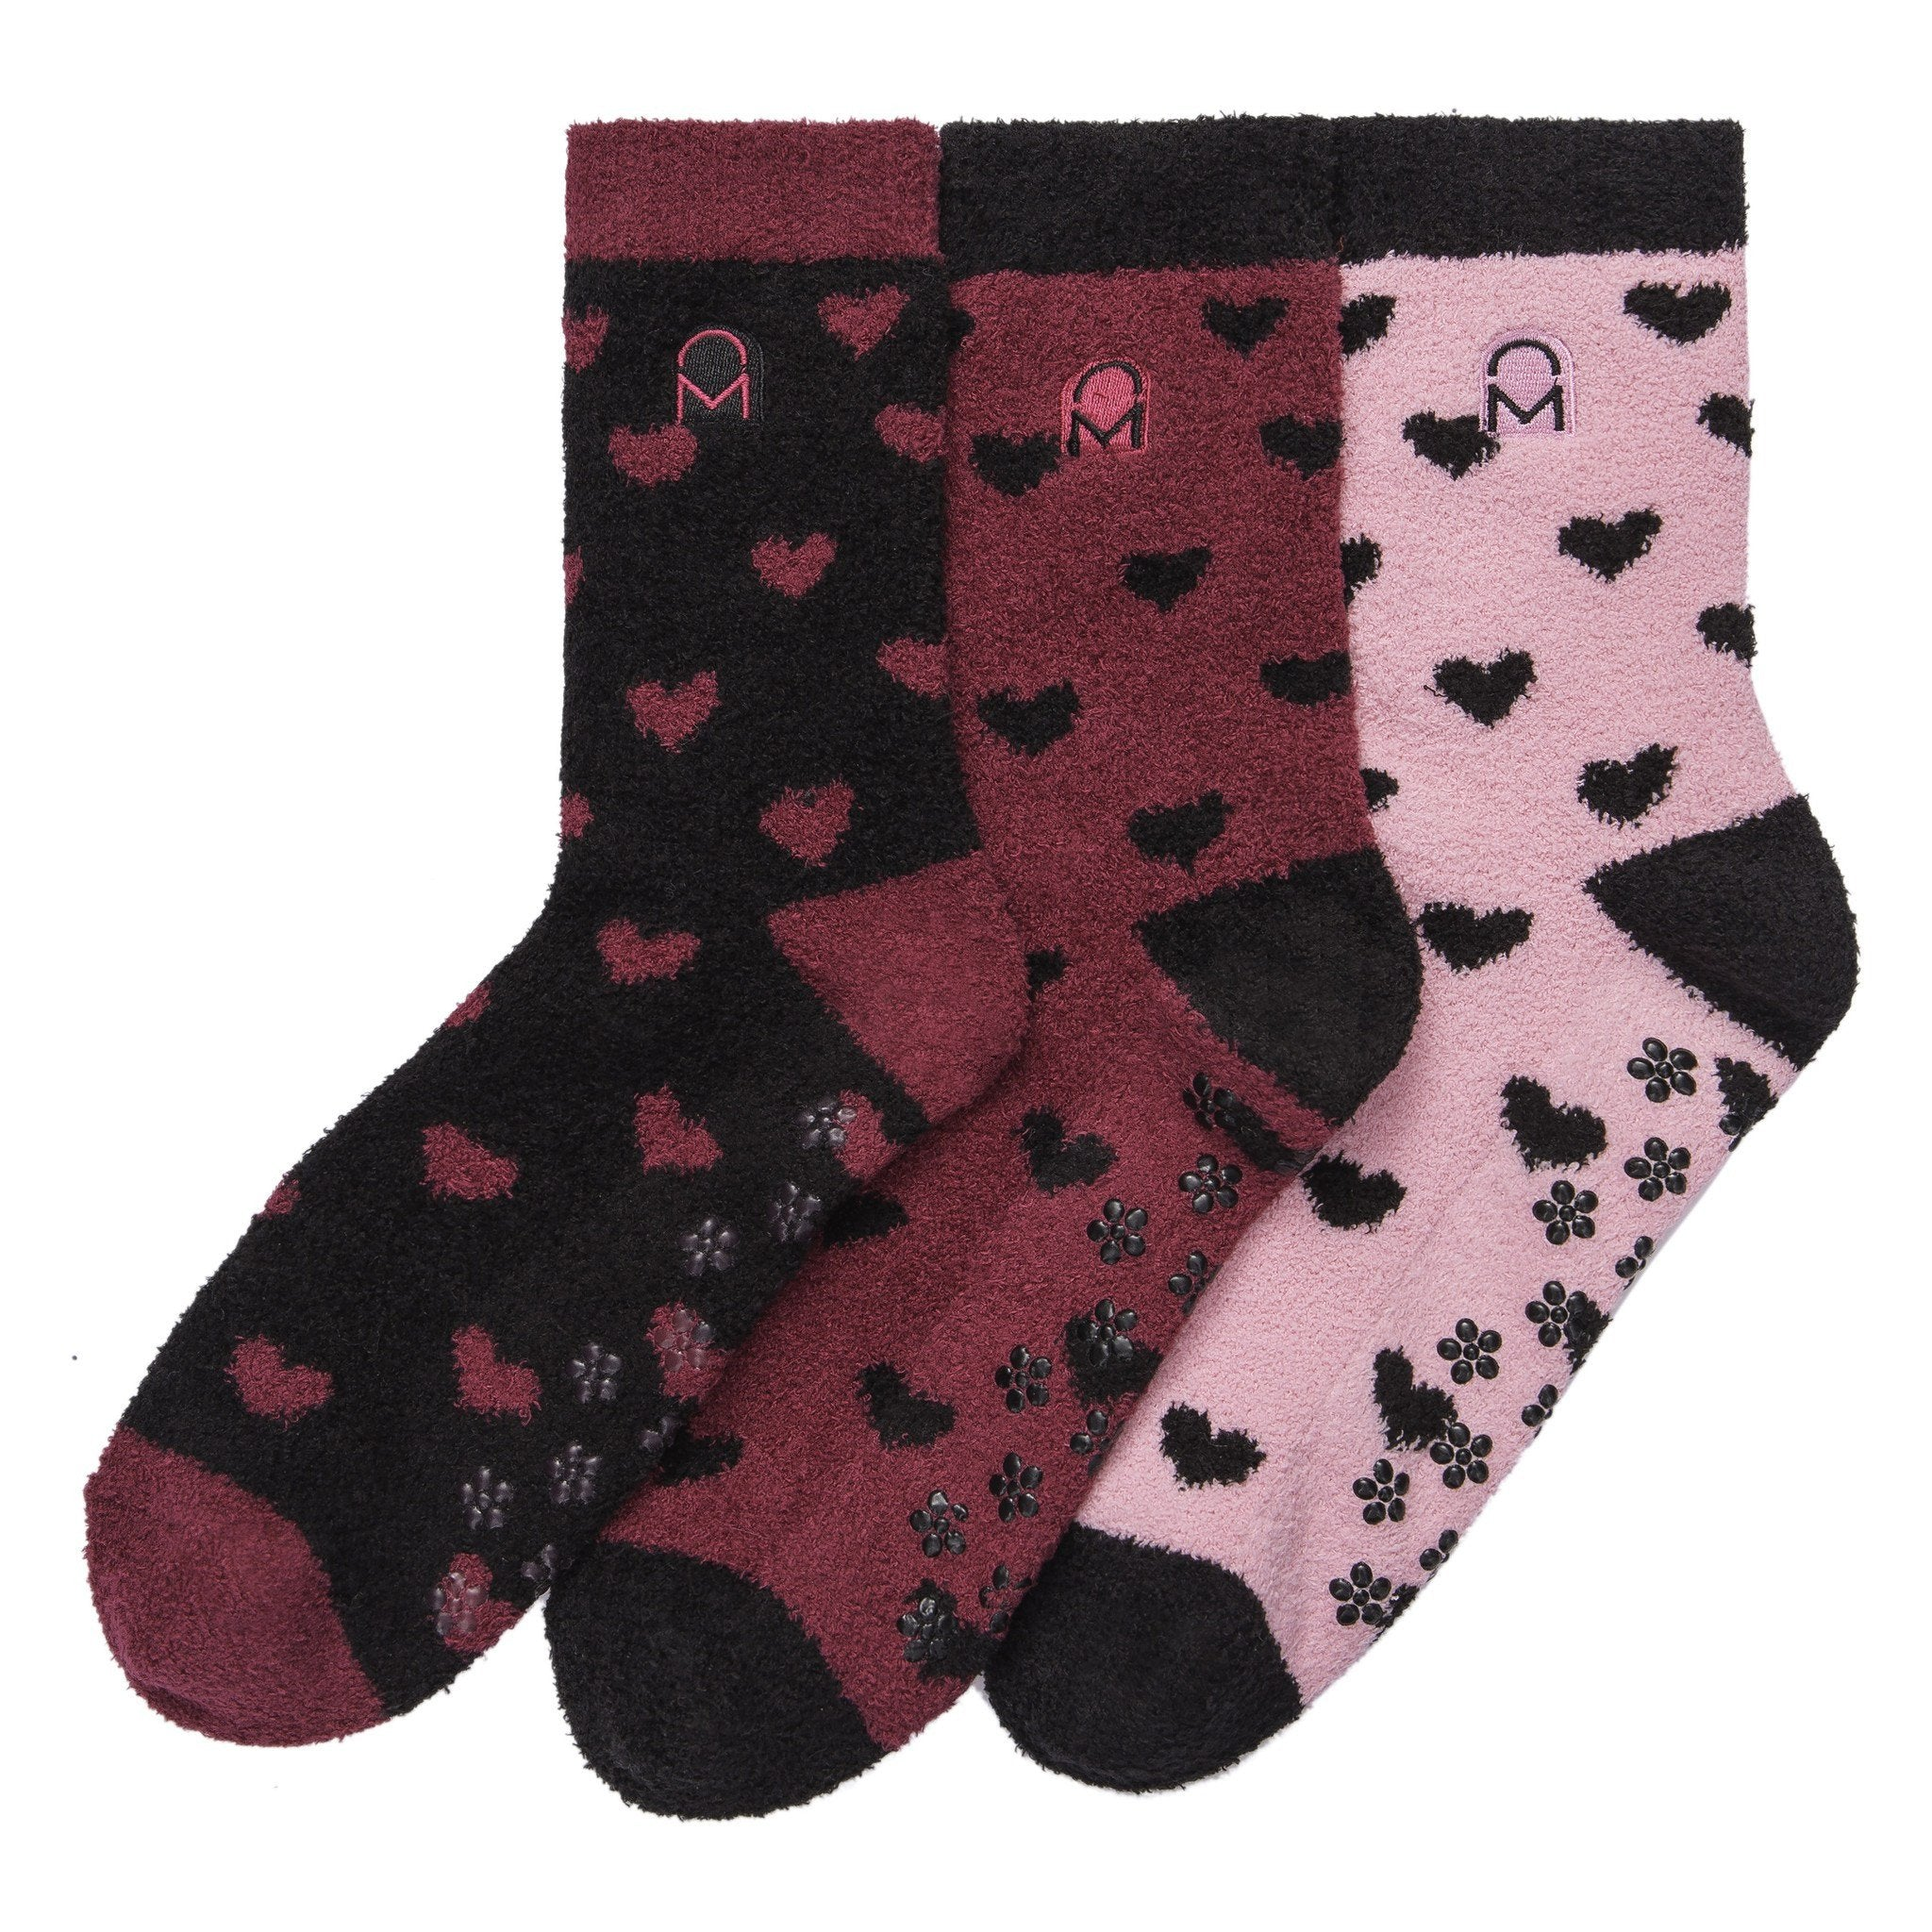 Women's Soft Anti-Skid Micro-Plush Winter Crew Socks - Set C7